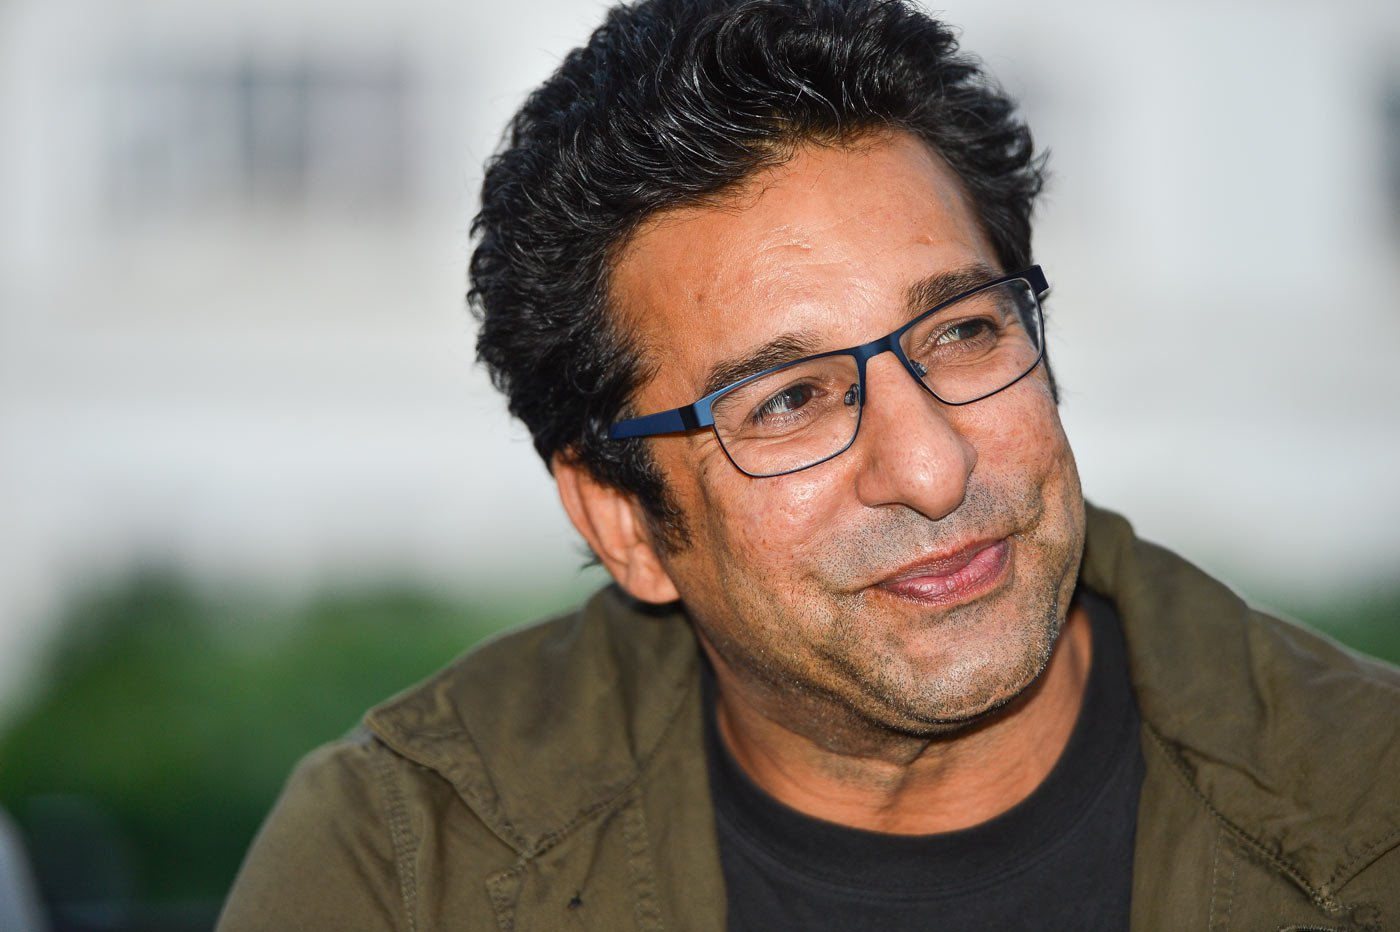 Wasim Akram finds himself in trouble with the law. PHOTO COURTESY: CRICINFO